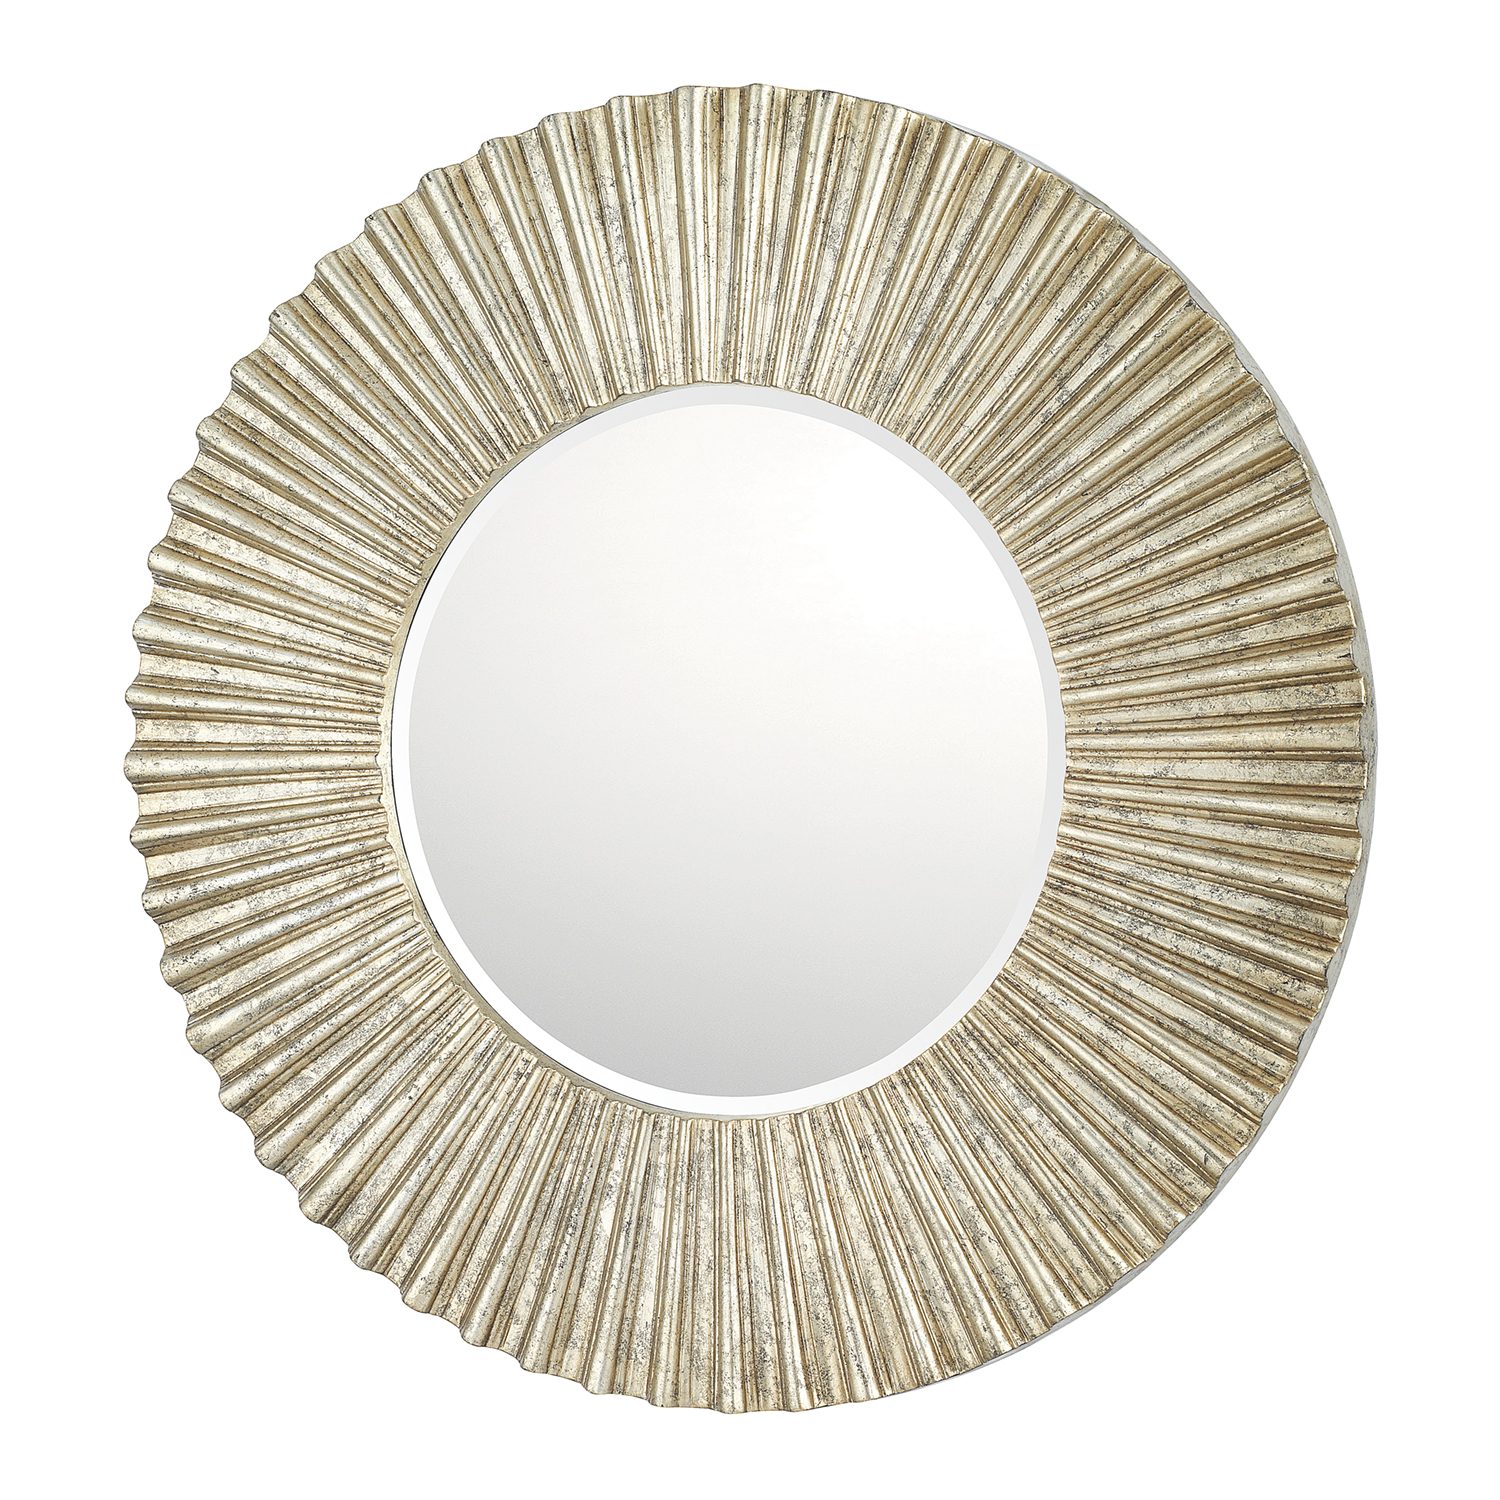 Decorative Mirror from the Mirrors collection by Capital Lighting 717101MM